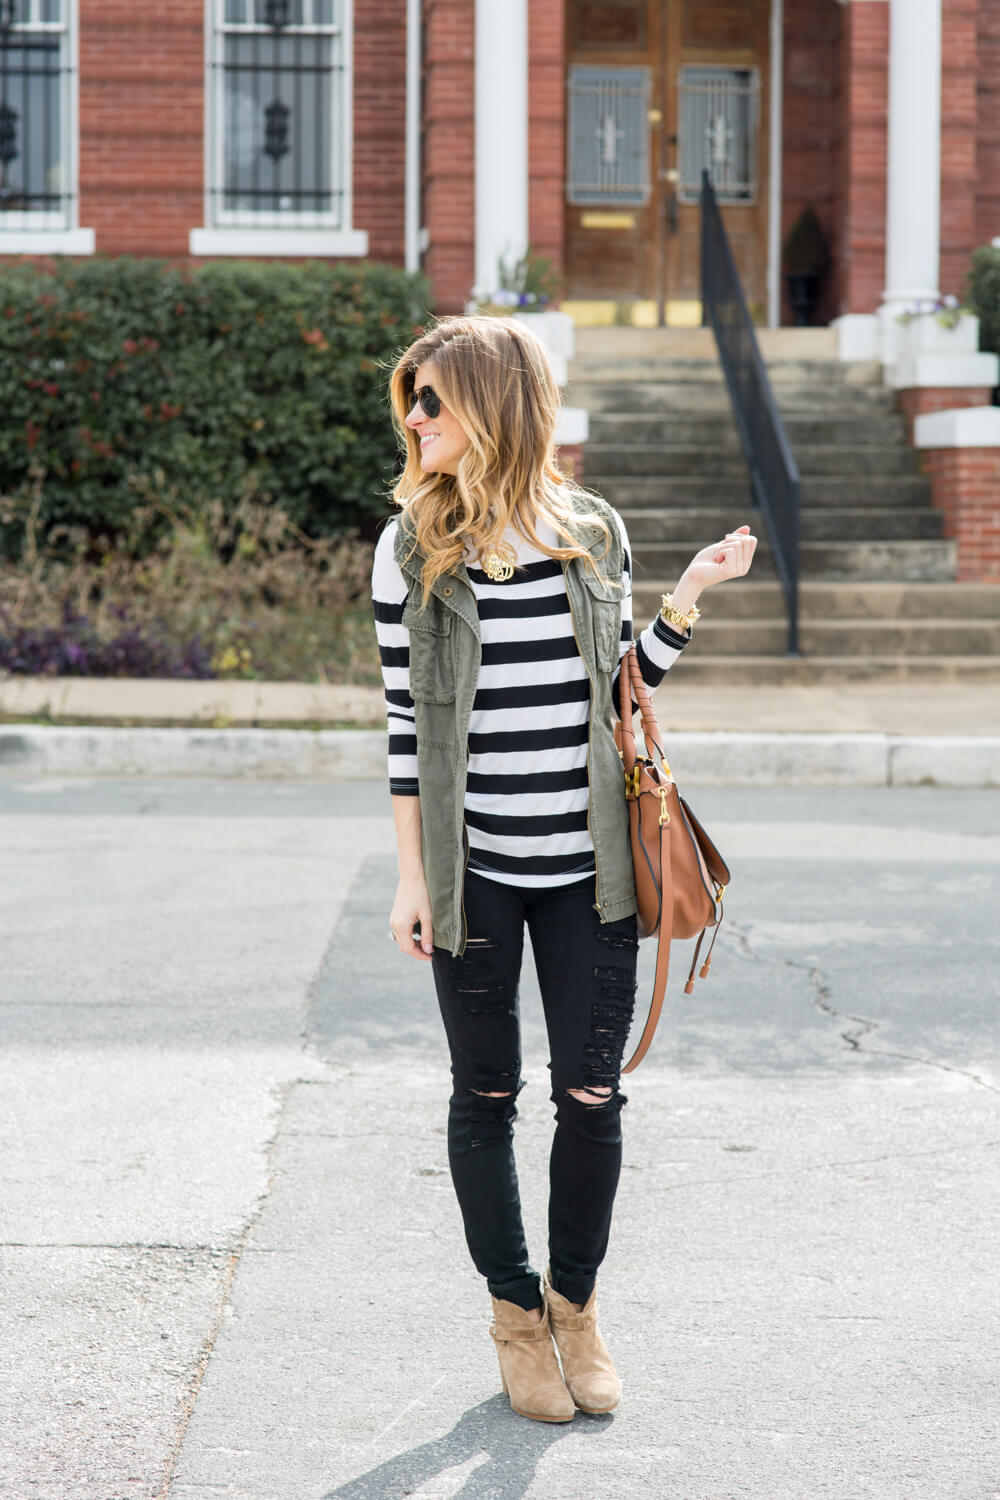 22fd06c14b What to wear with black jeans - 30+ Black Jeans Outfit Ideas